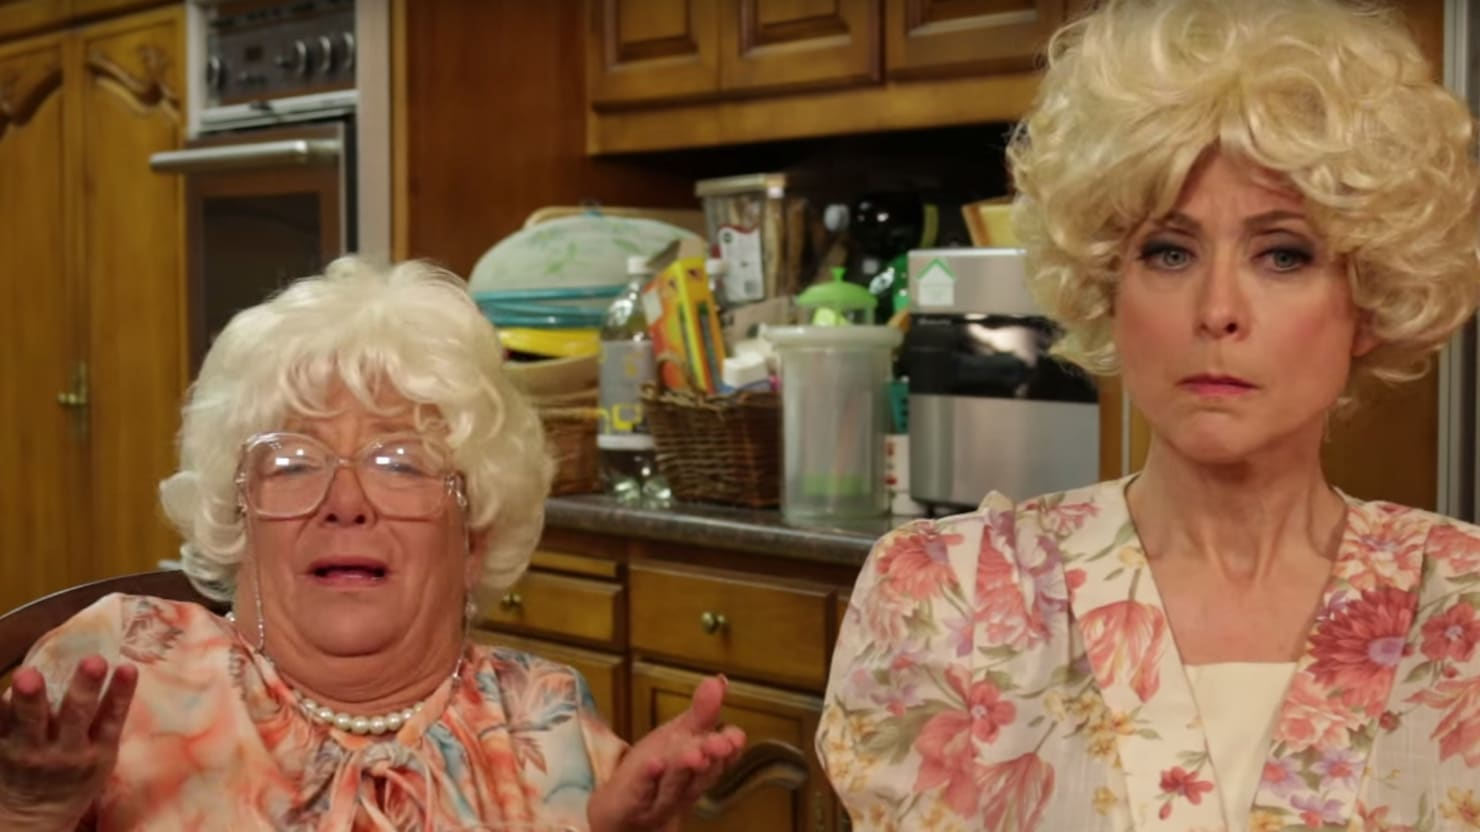 Black Girls Gone Wild Nude Good the 'golden girls' gone wild: bea arthur and co. get the xxx treatment